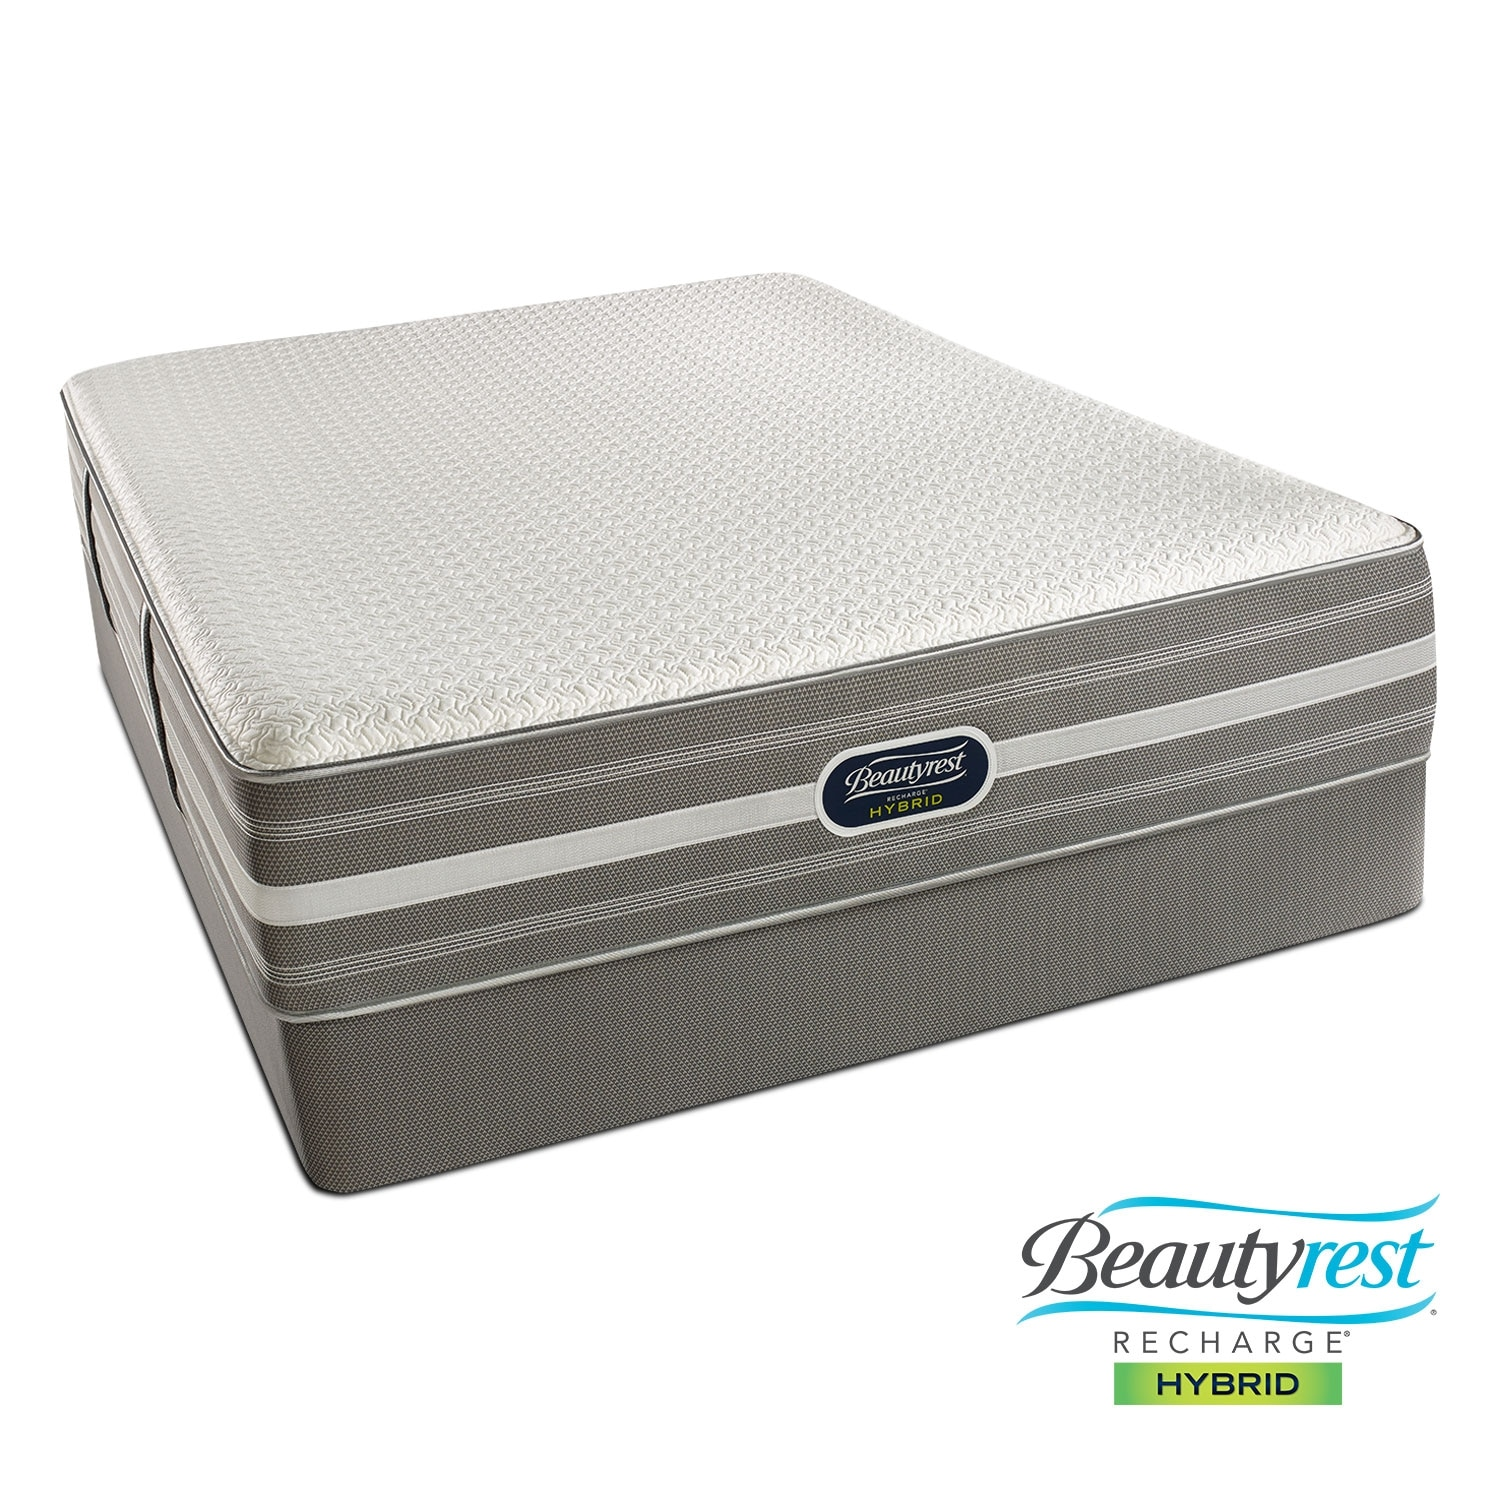 Mattresses and Bedding - Hopewell Luxury Firm California King Mattress/Split Foundation Set